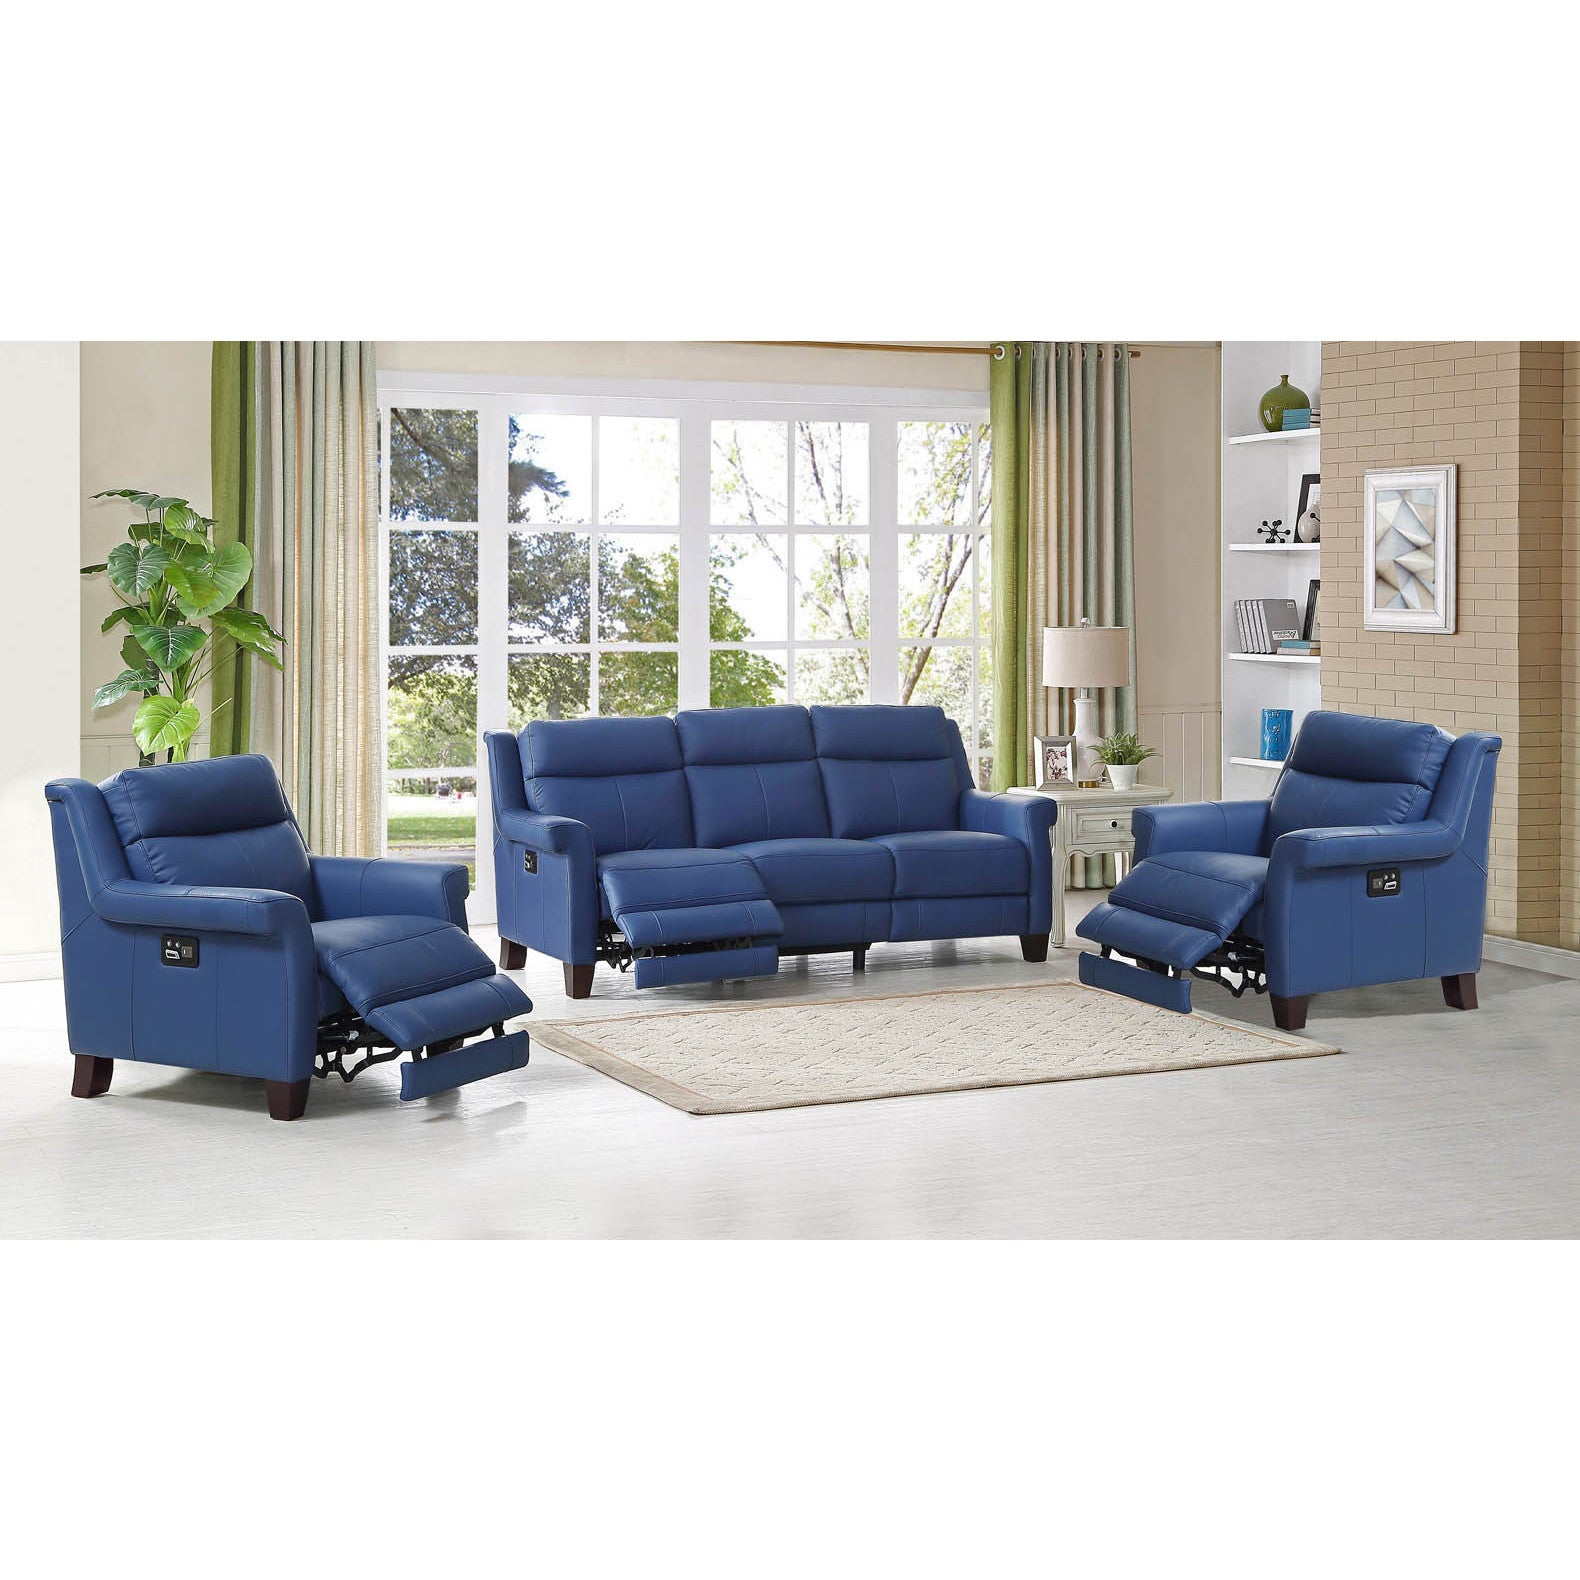 Amax Dolce 3 Pieces Top Grain Blue